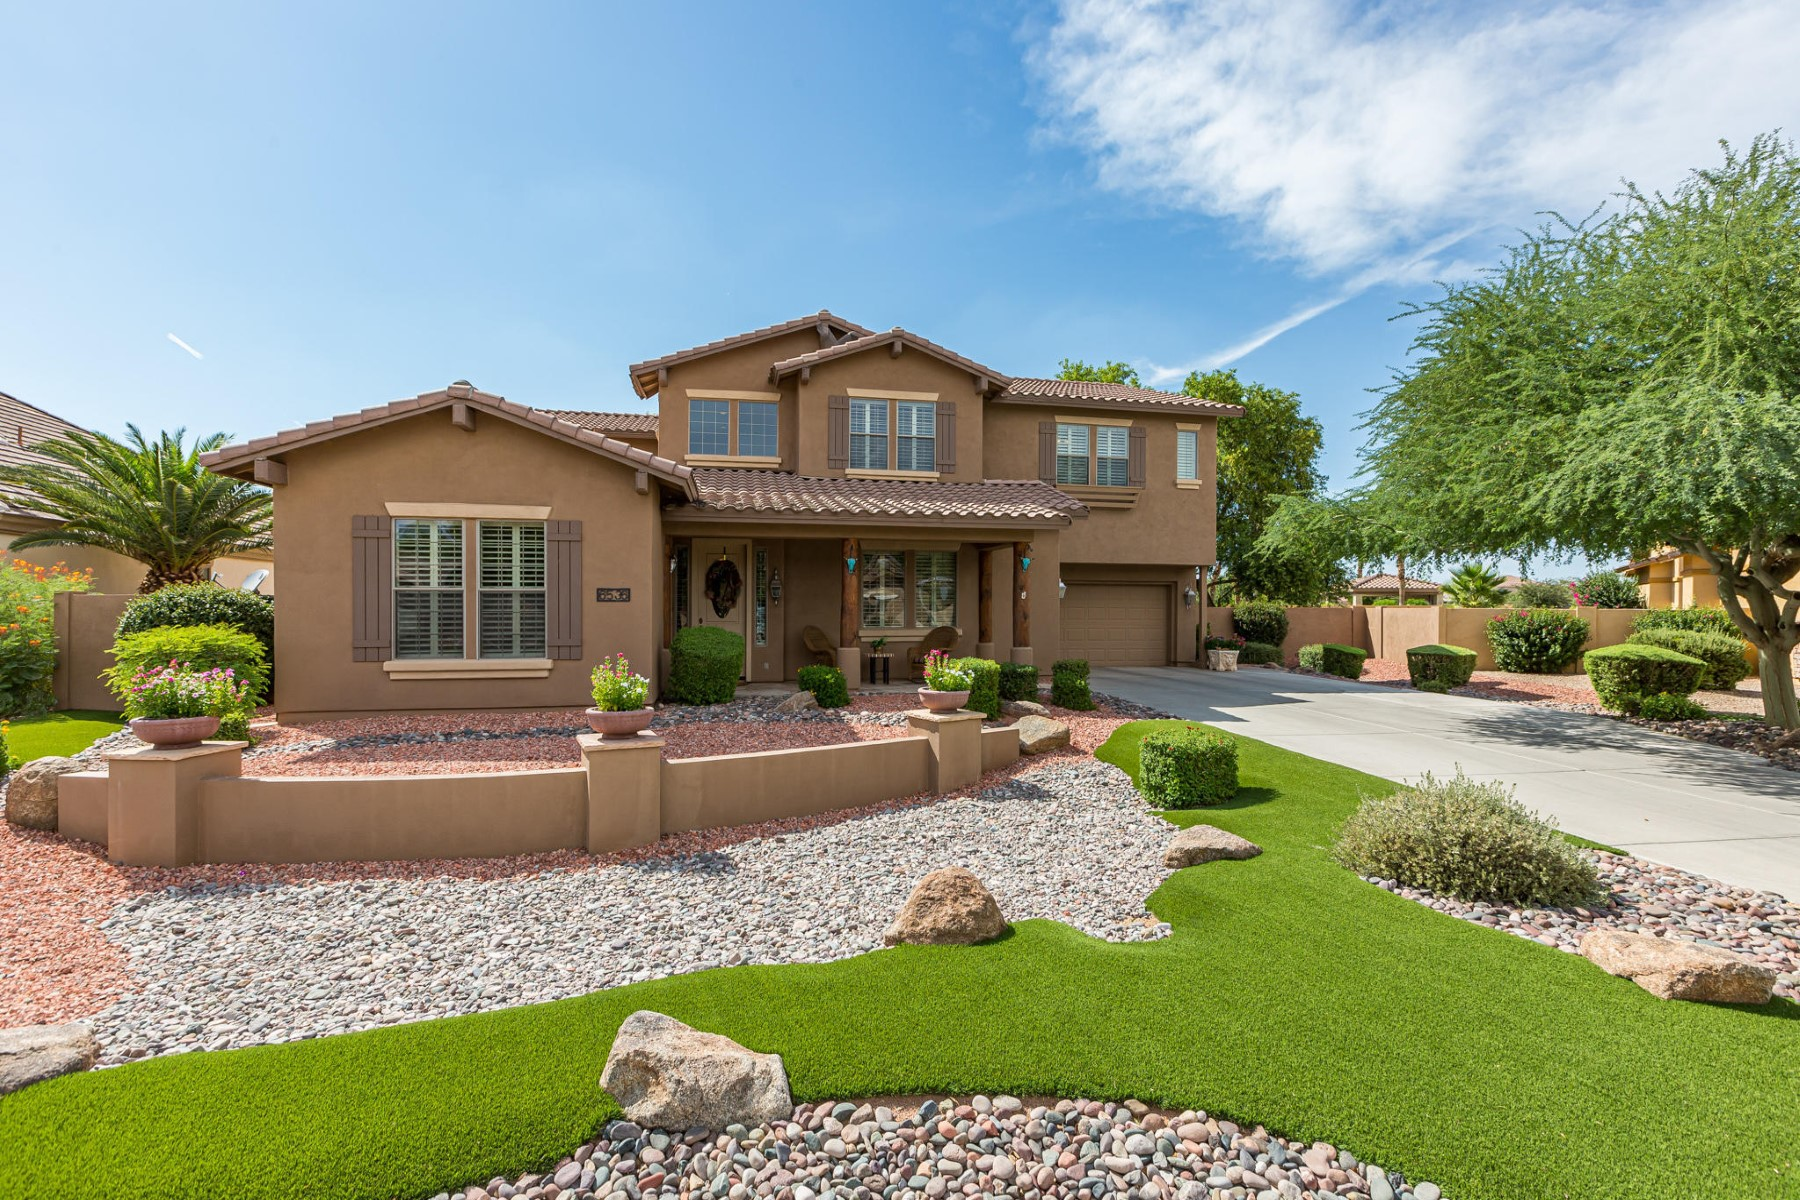 Single Family Homes for Active at Fieldstone Estates 6536 S ROBINS WAY Chandler, Arizona 85249 United States